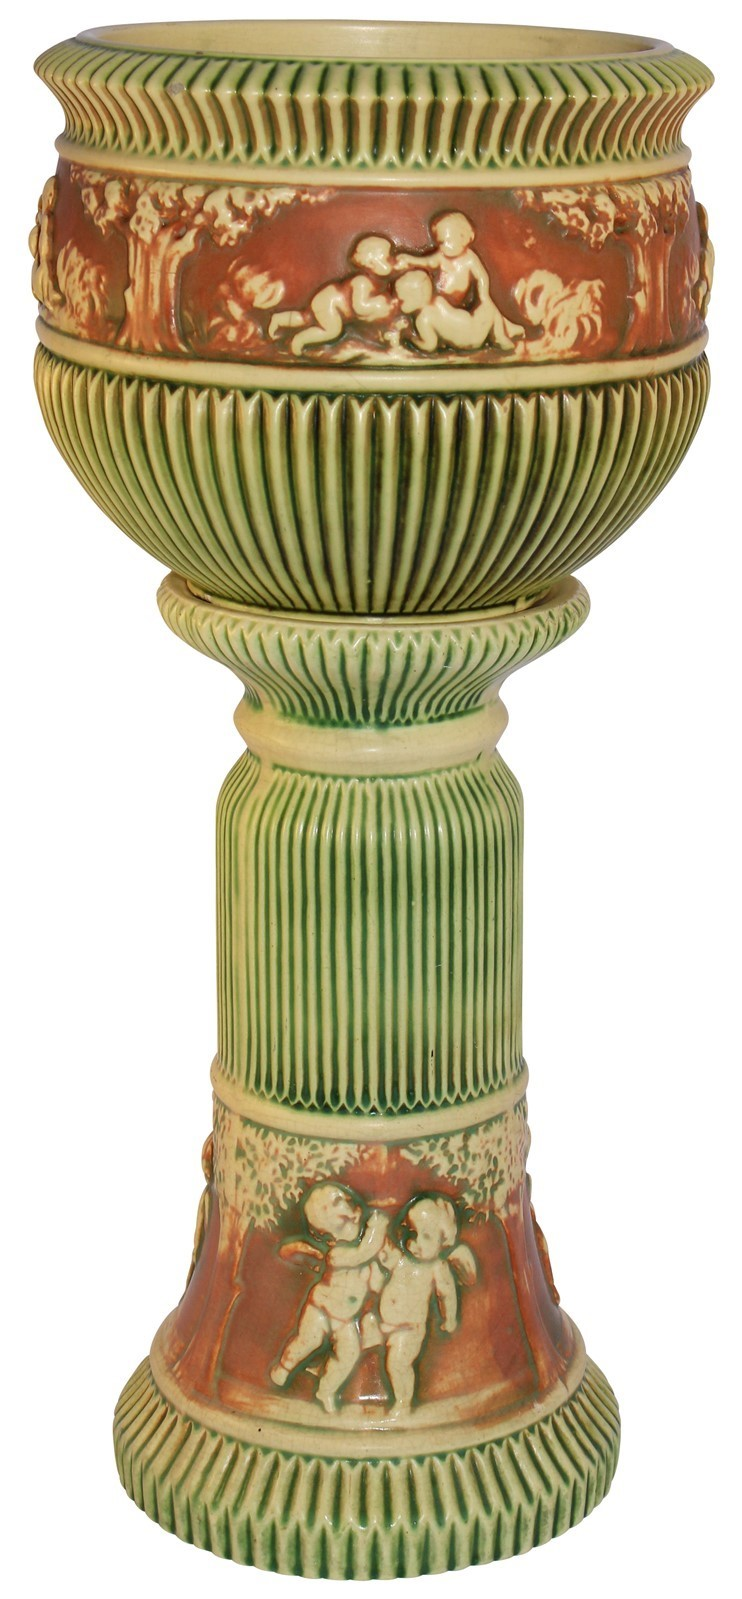 Roseville Pottery Donatello Jardiniere And Pedestal 579-8